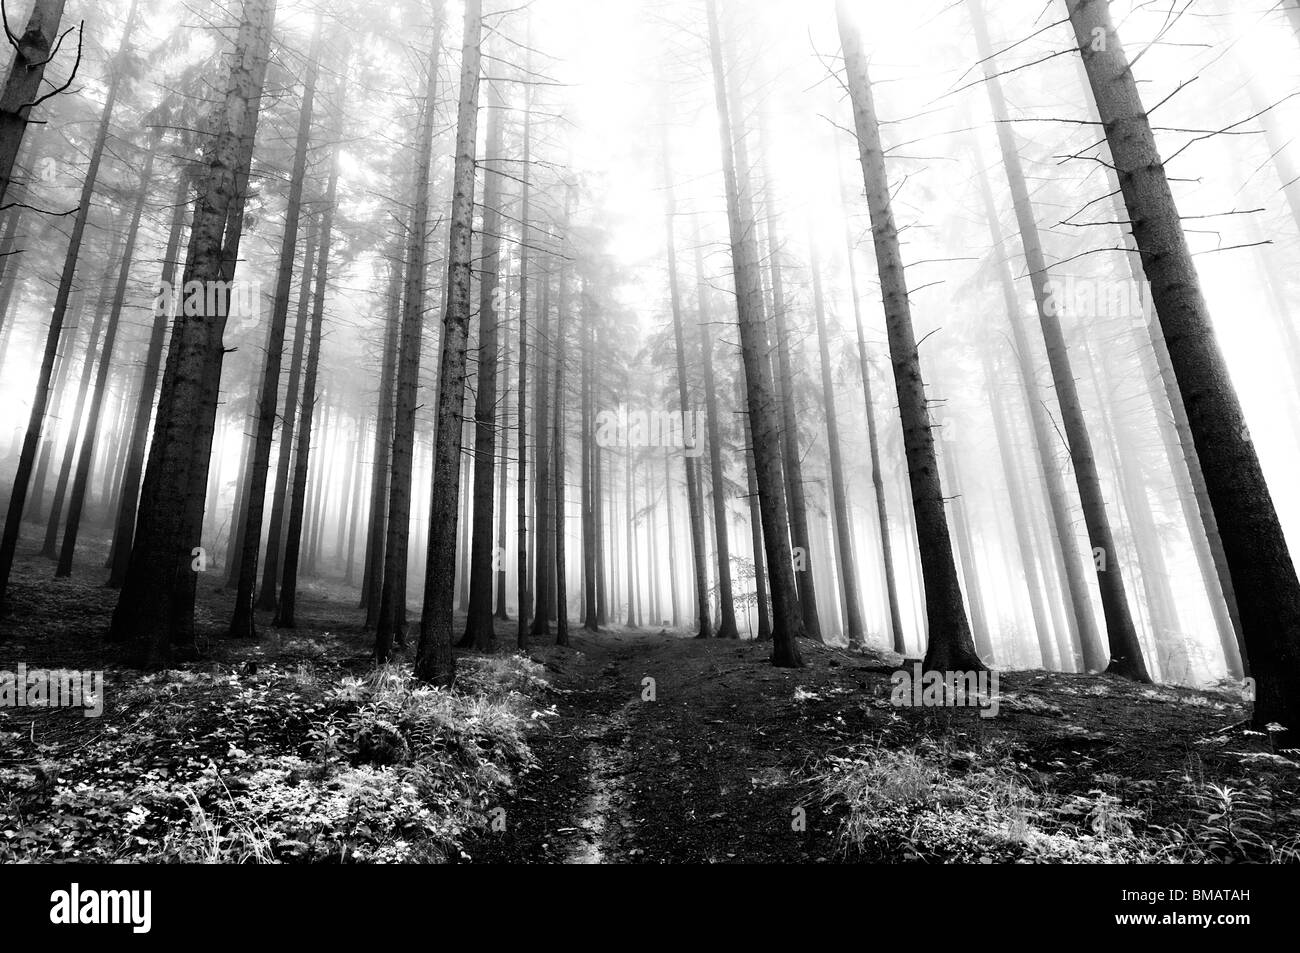 conifer forest in early morning - early morning fog - autumn forest - Stock Image